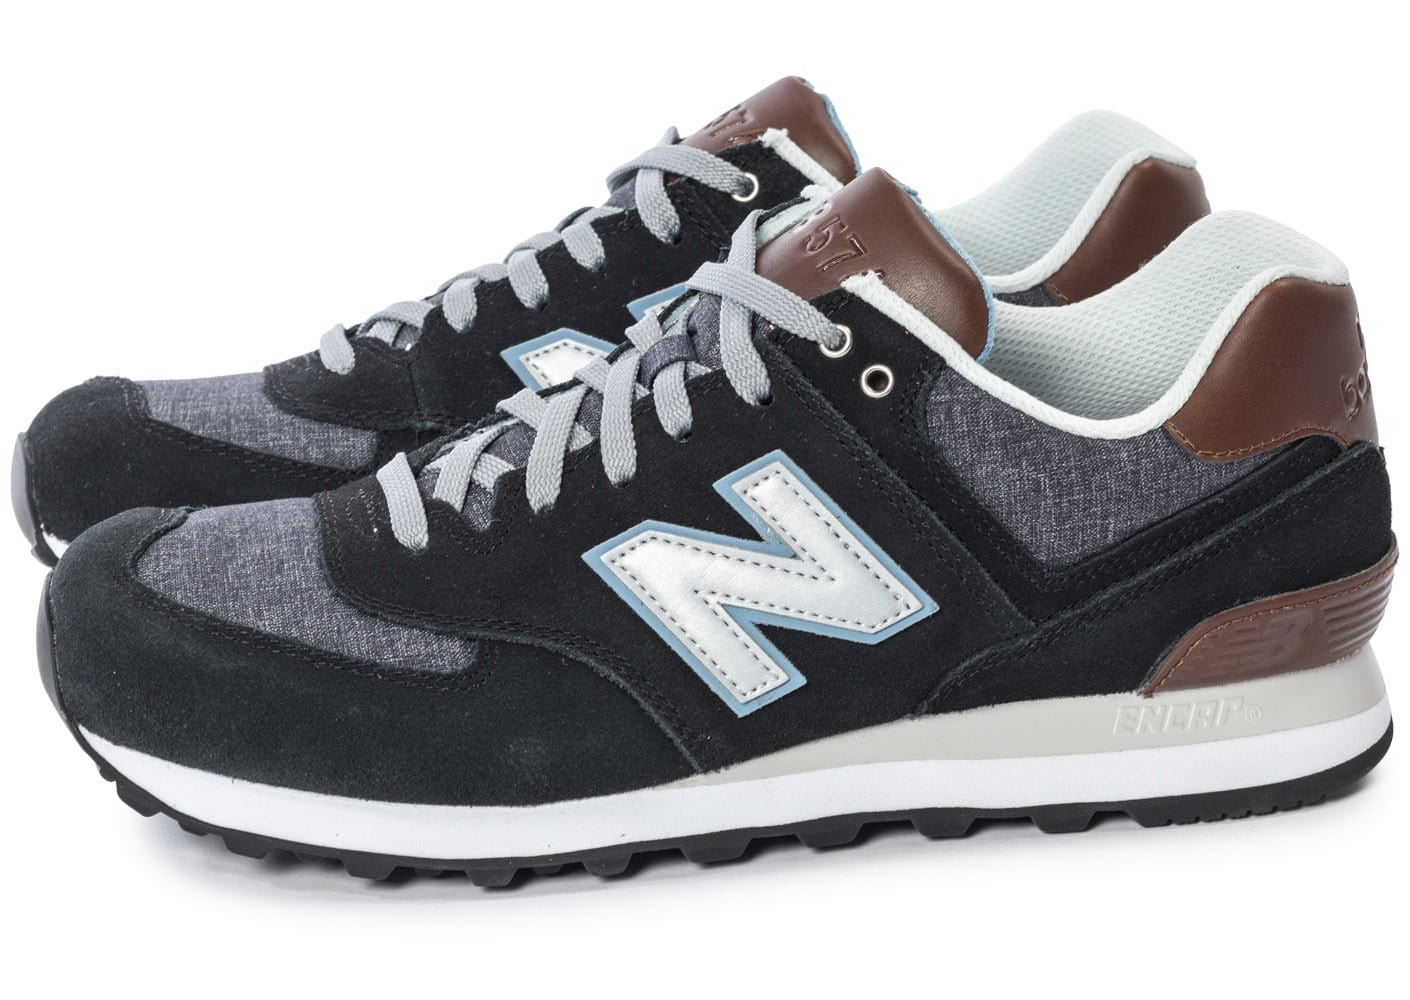 Chaussures New Balance grises Casual CmWCs1e